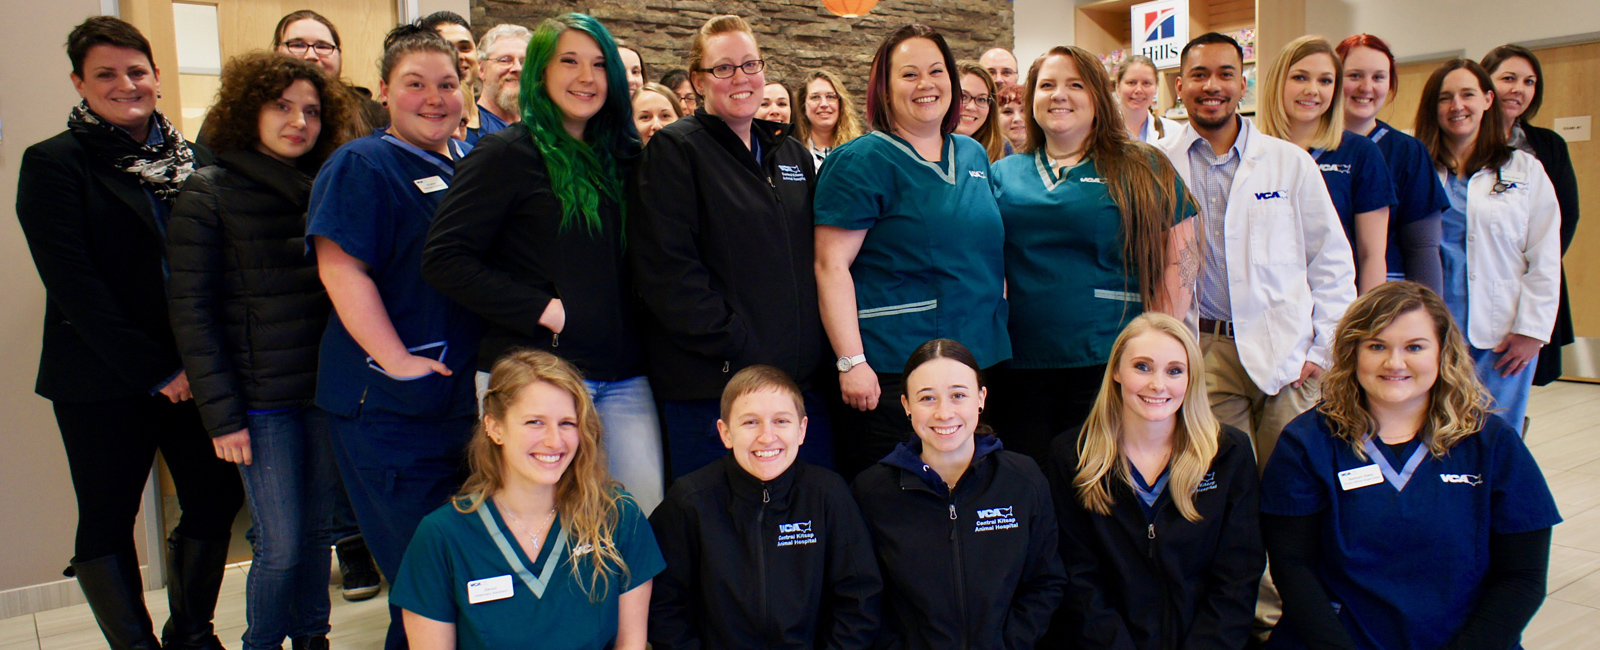 Team Picture of VCA Central Kitsap Animal Hospital